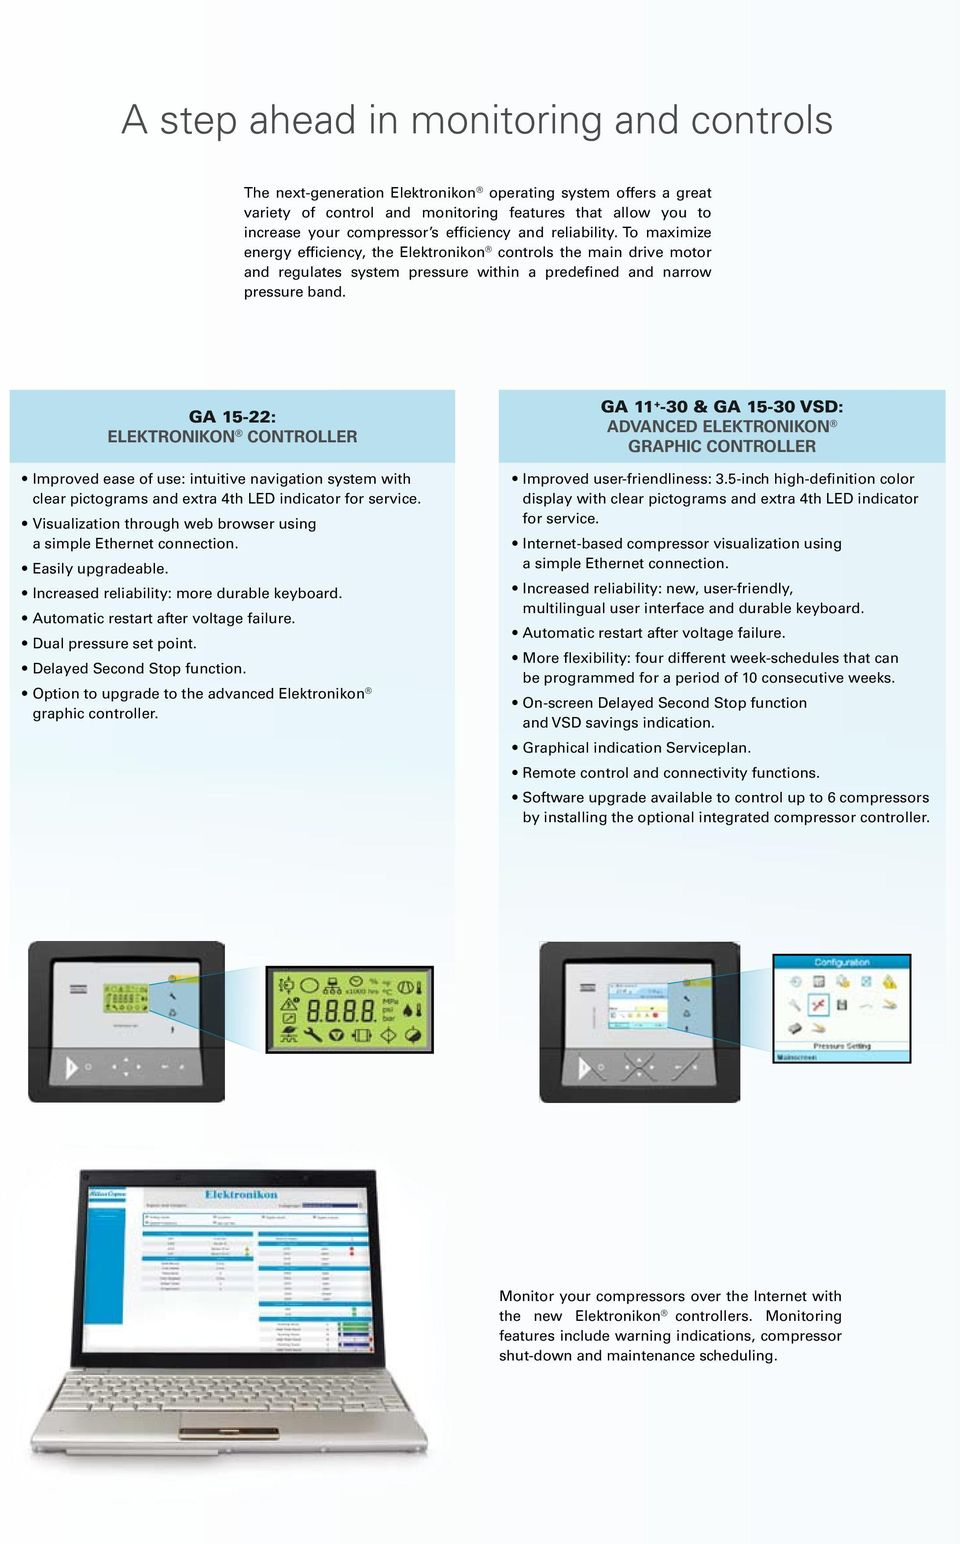 GA 15-22: Elektronikon controller Improved ease of use: intuitive navigation system with clear pictograms and extra 4th LED indicator for service.